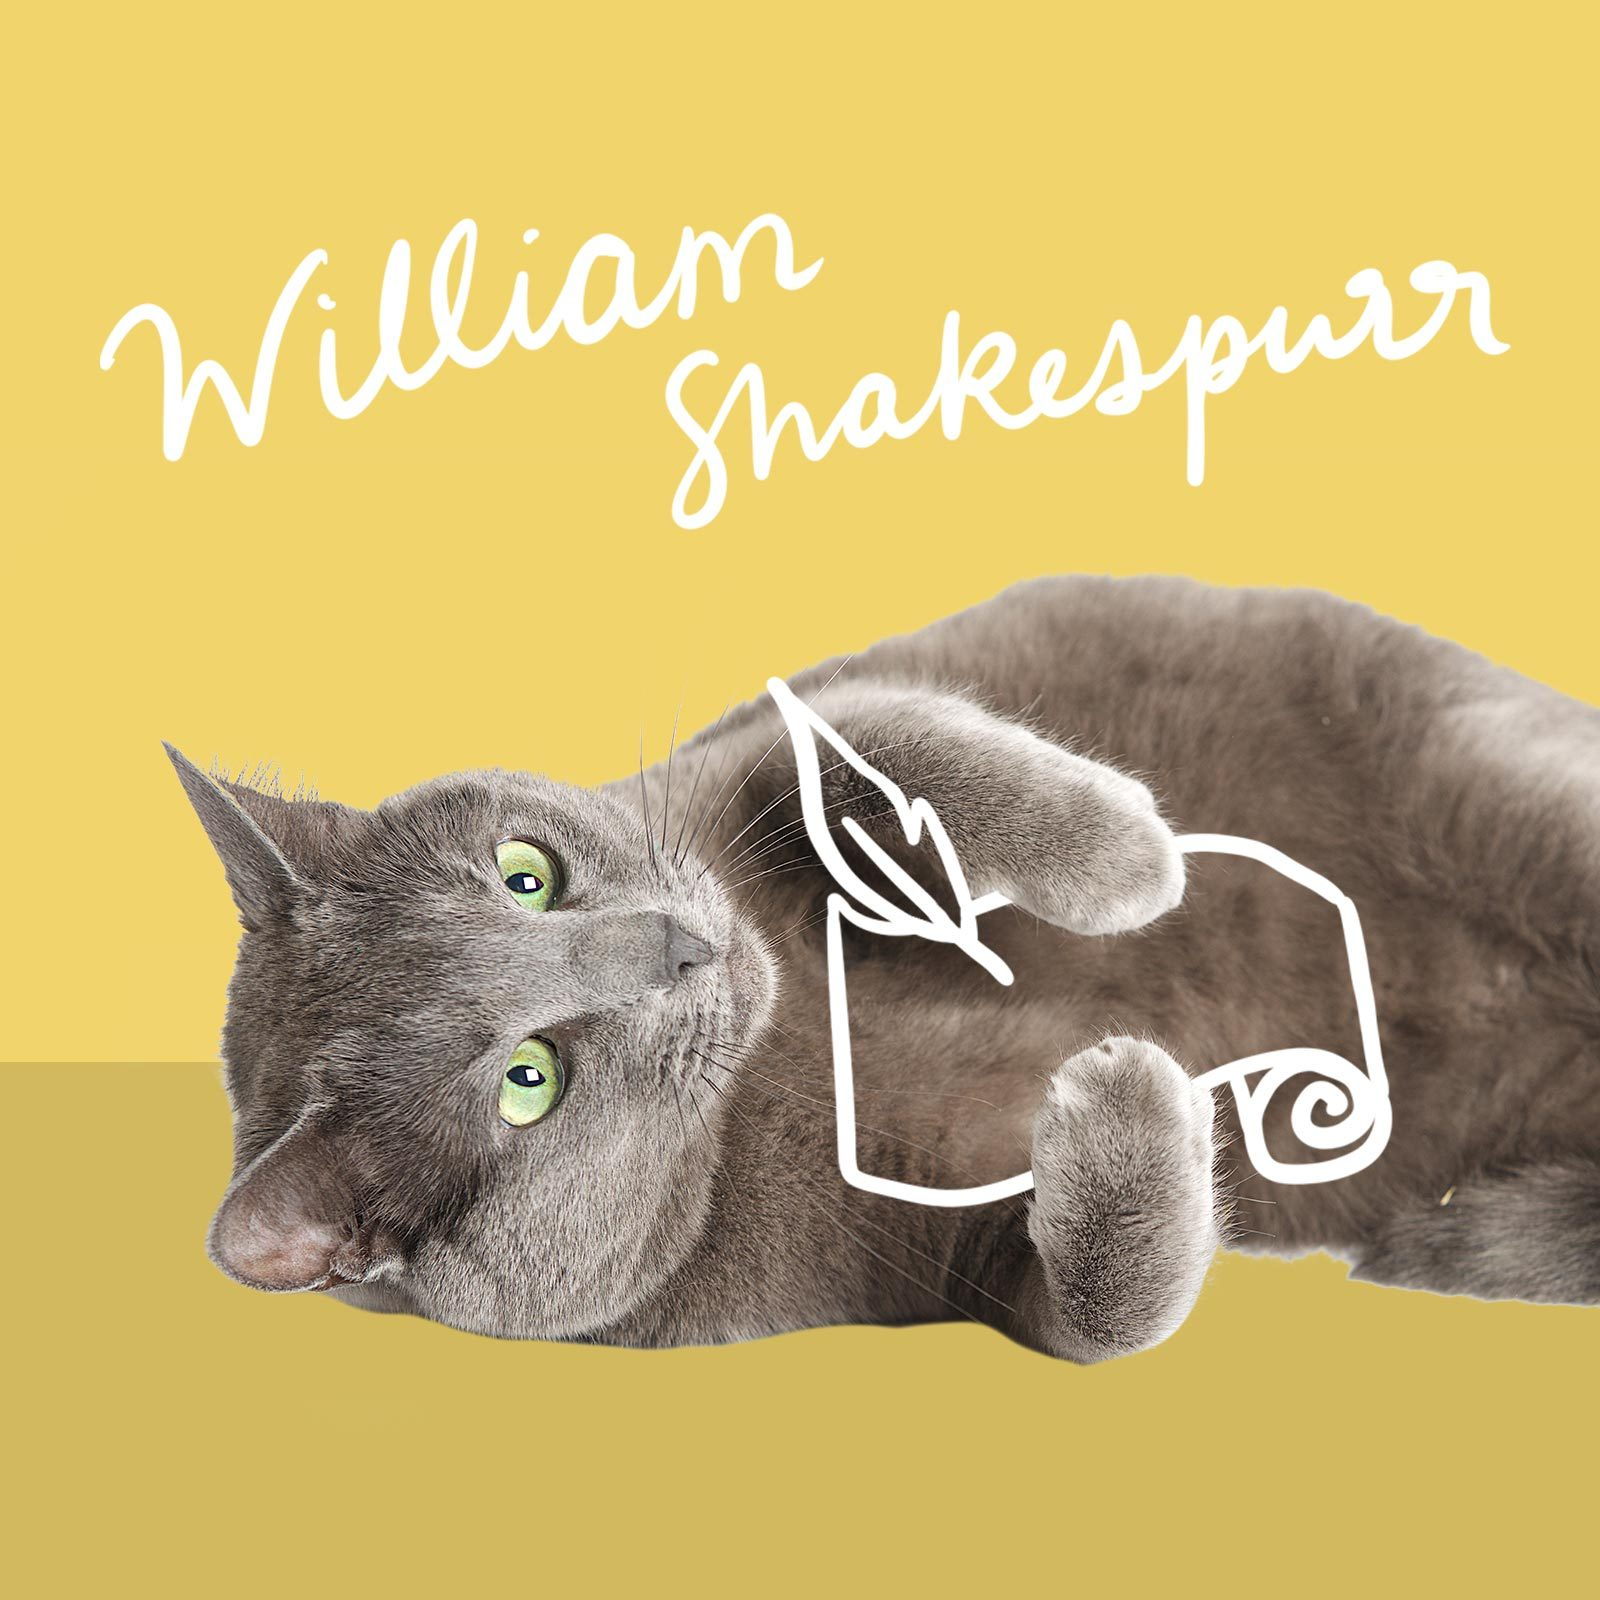 Cat writing on a scroll named William Shakespurr